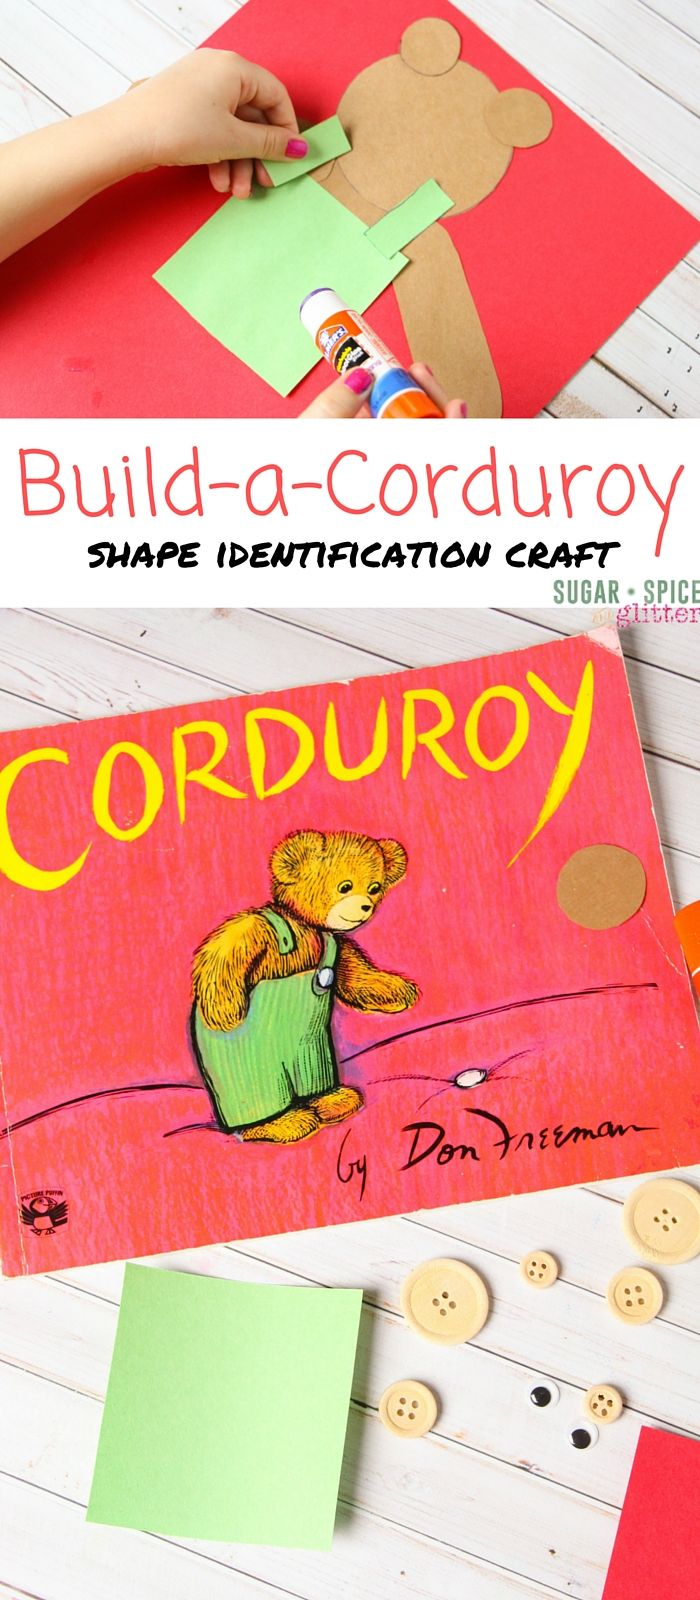 A fun shape identification craft to try after reading Corduroy - this easy book craft for kids is great for mixed age groups or as a busy bag activity.